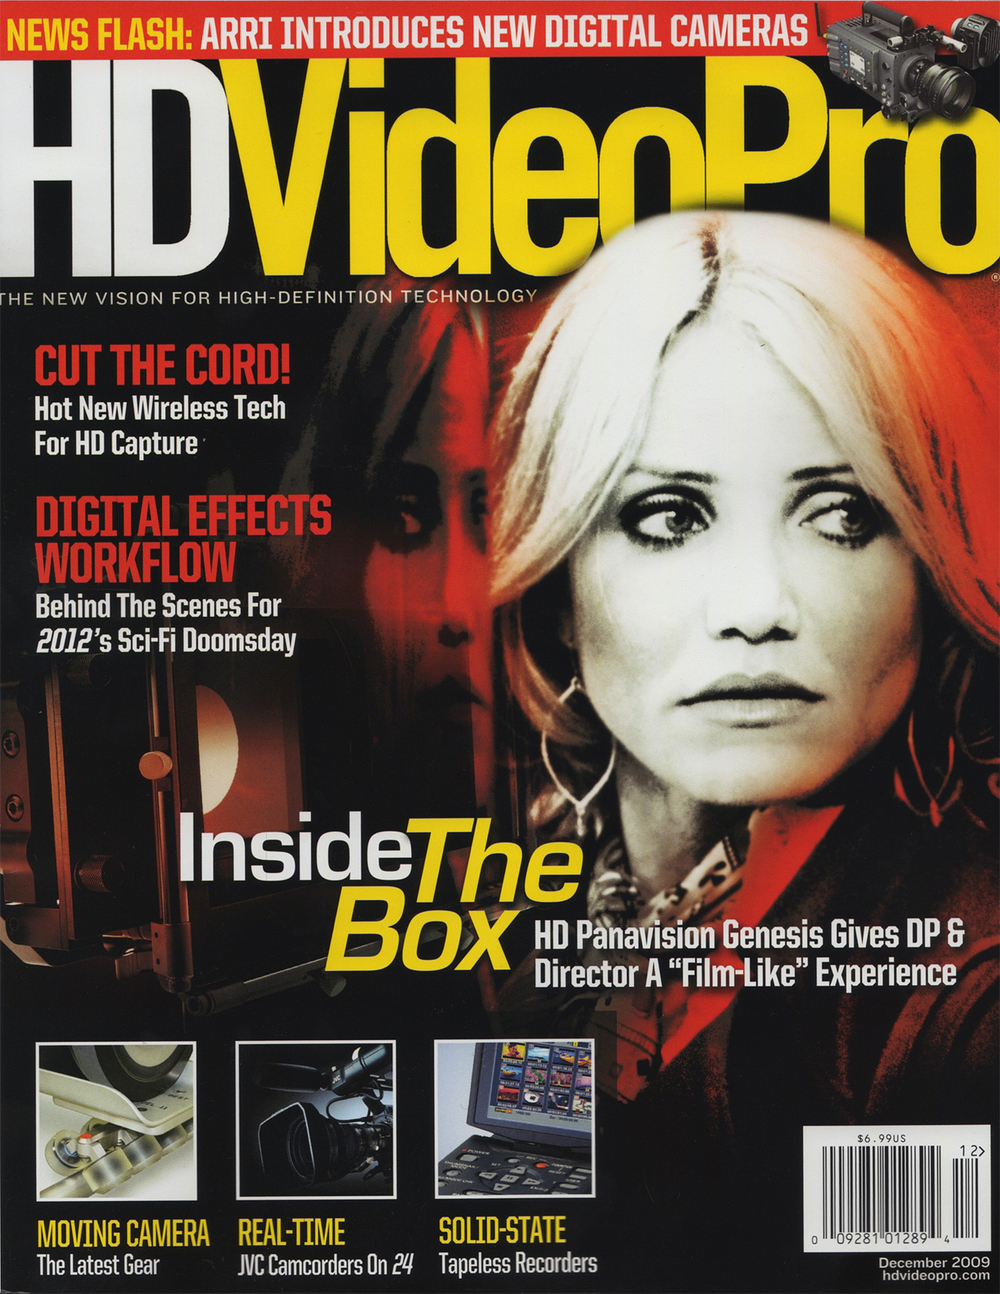 HD Video Pro magazine